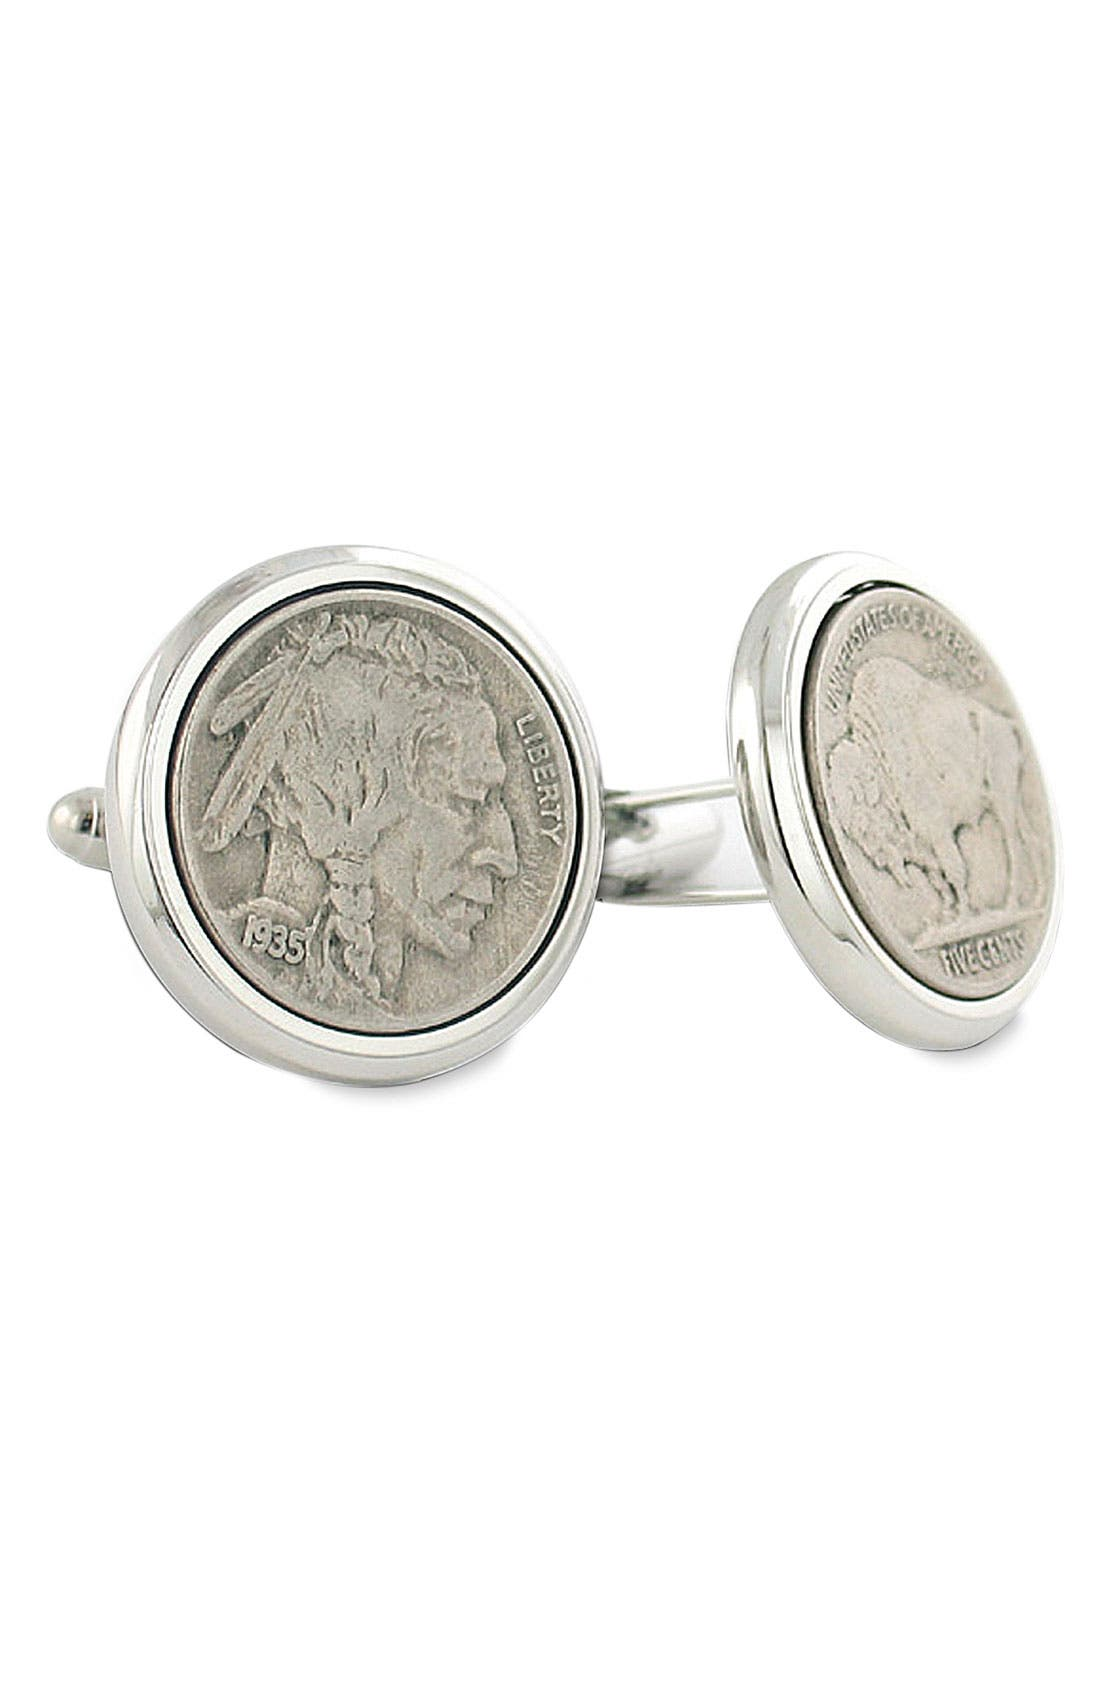 Alternate Image 1 Selected - David Donahue Buffalo Nickel Cuff Links